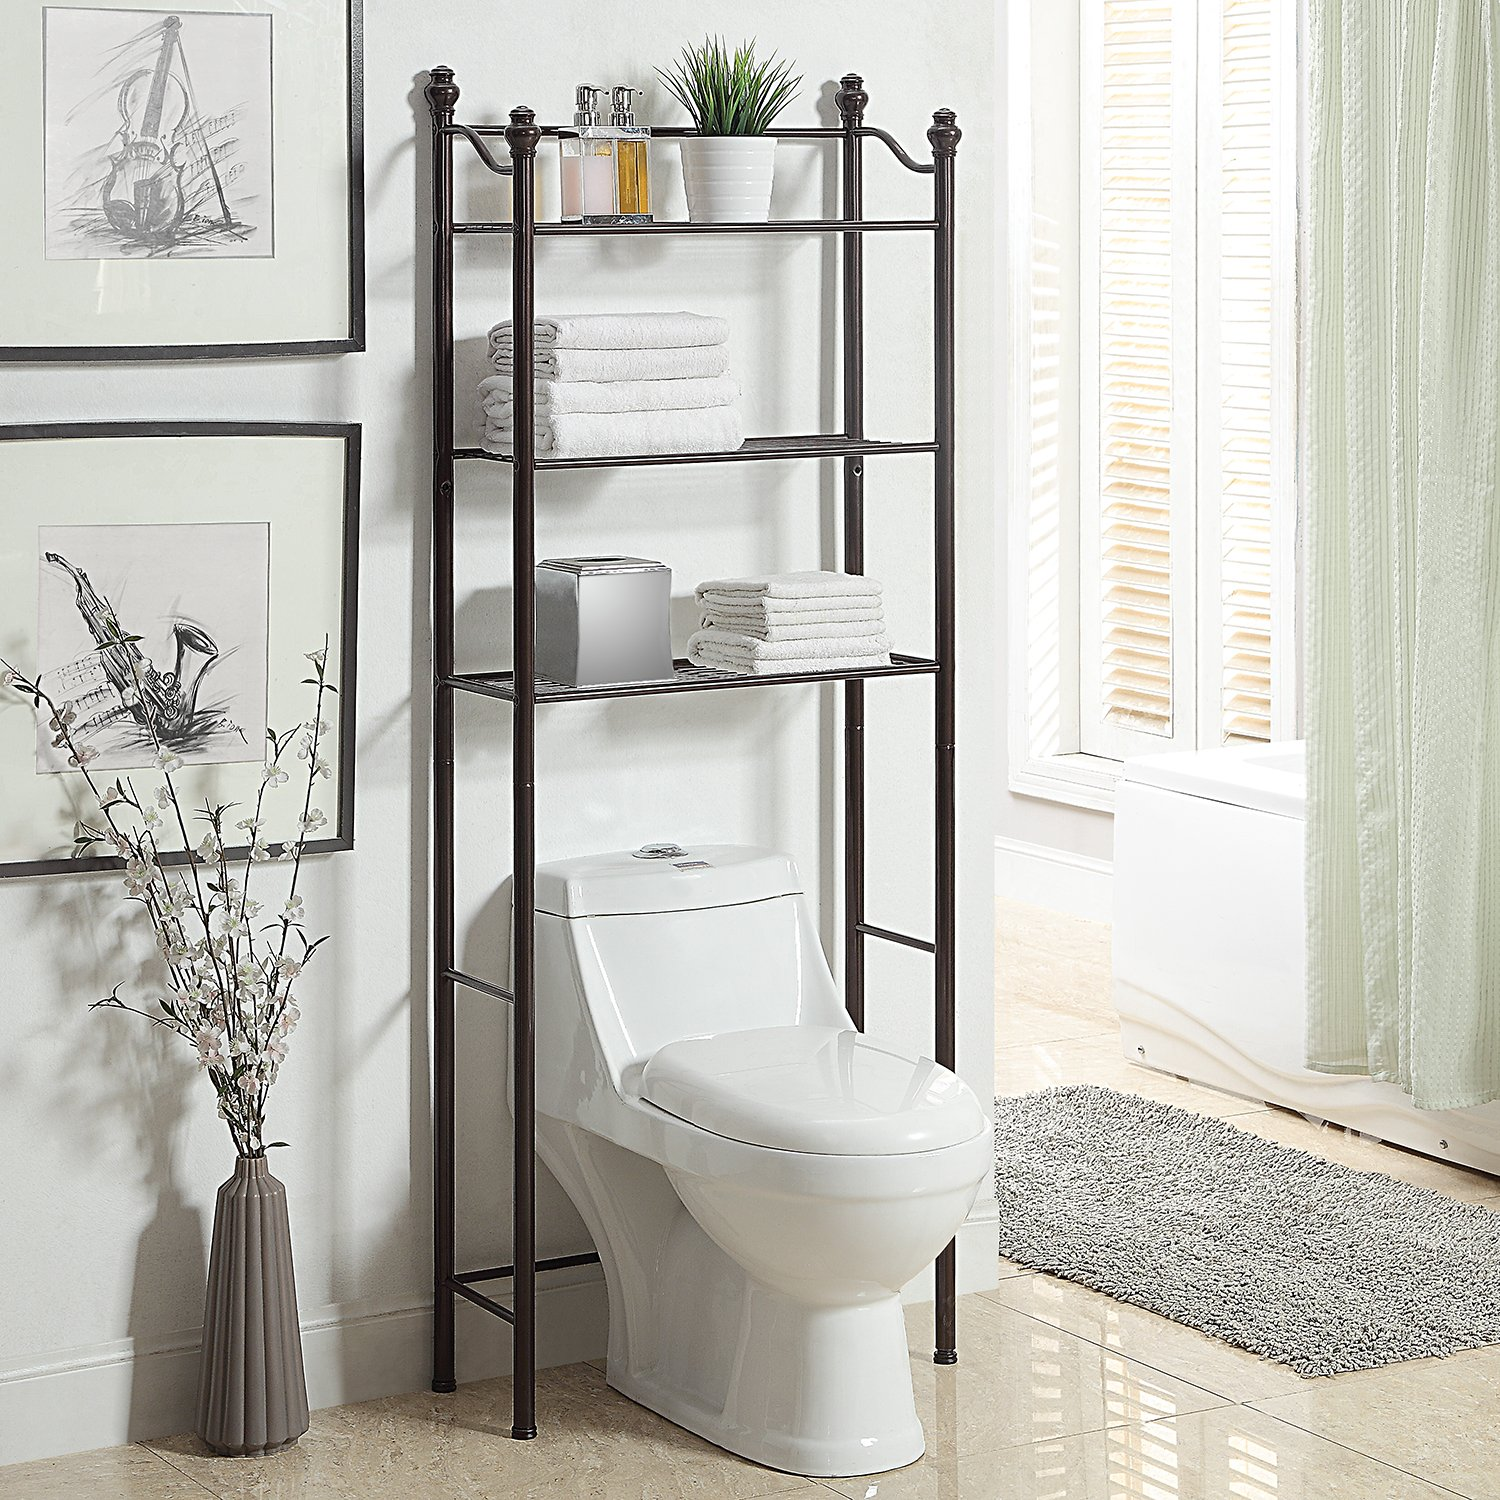 Organize It All 3 Tier Over The Toilet Bathroom Storage Space Saver - Oil Rubbed Bronze